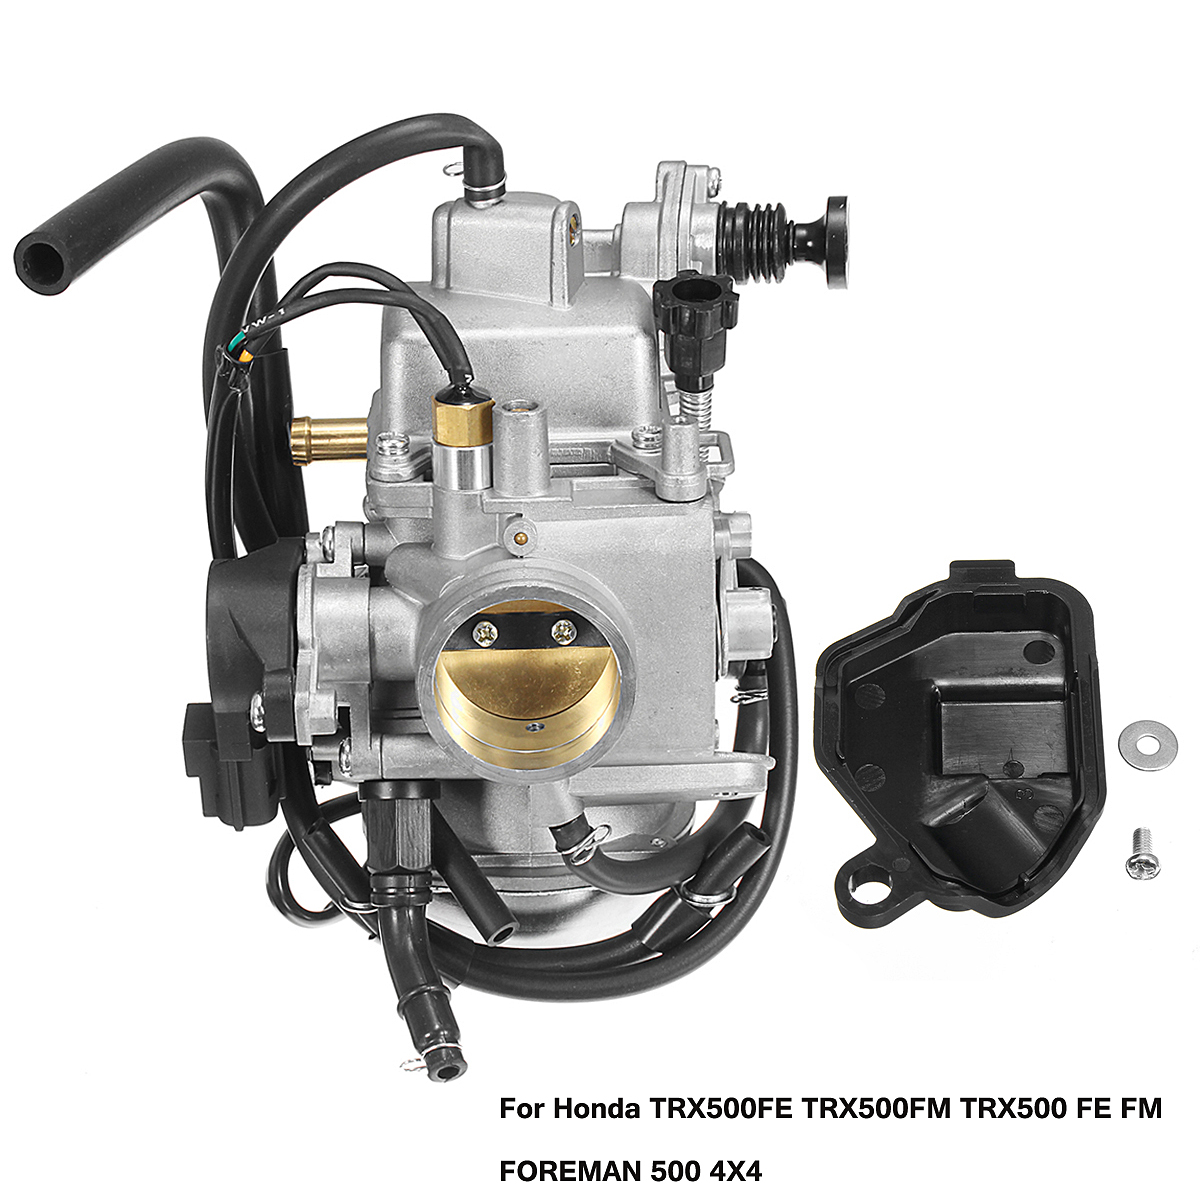 Carburetor Carb for Honda TRX500FE TRX500FM TRX500 FE FM Foreman 500 4X4 trx 500 foreman carburetor carb 2005 2011 brand new highest quality